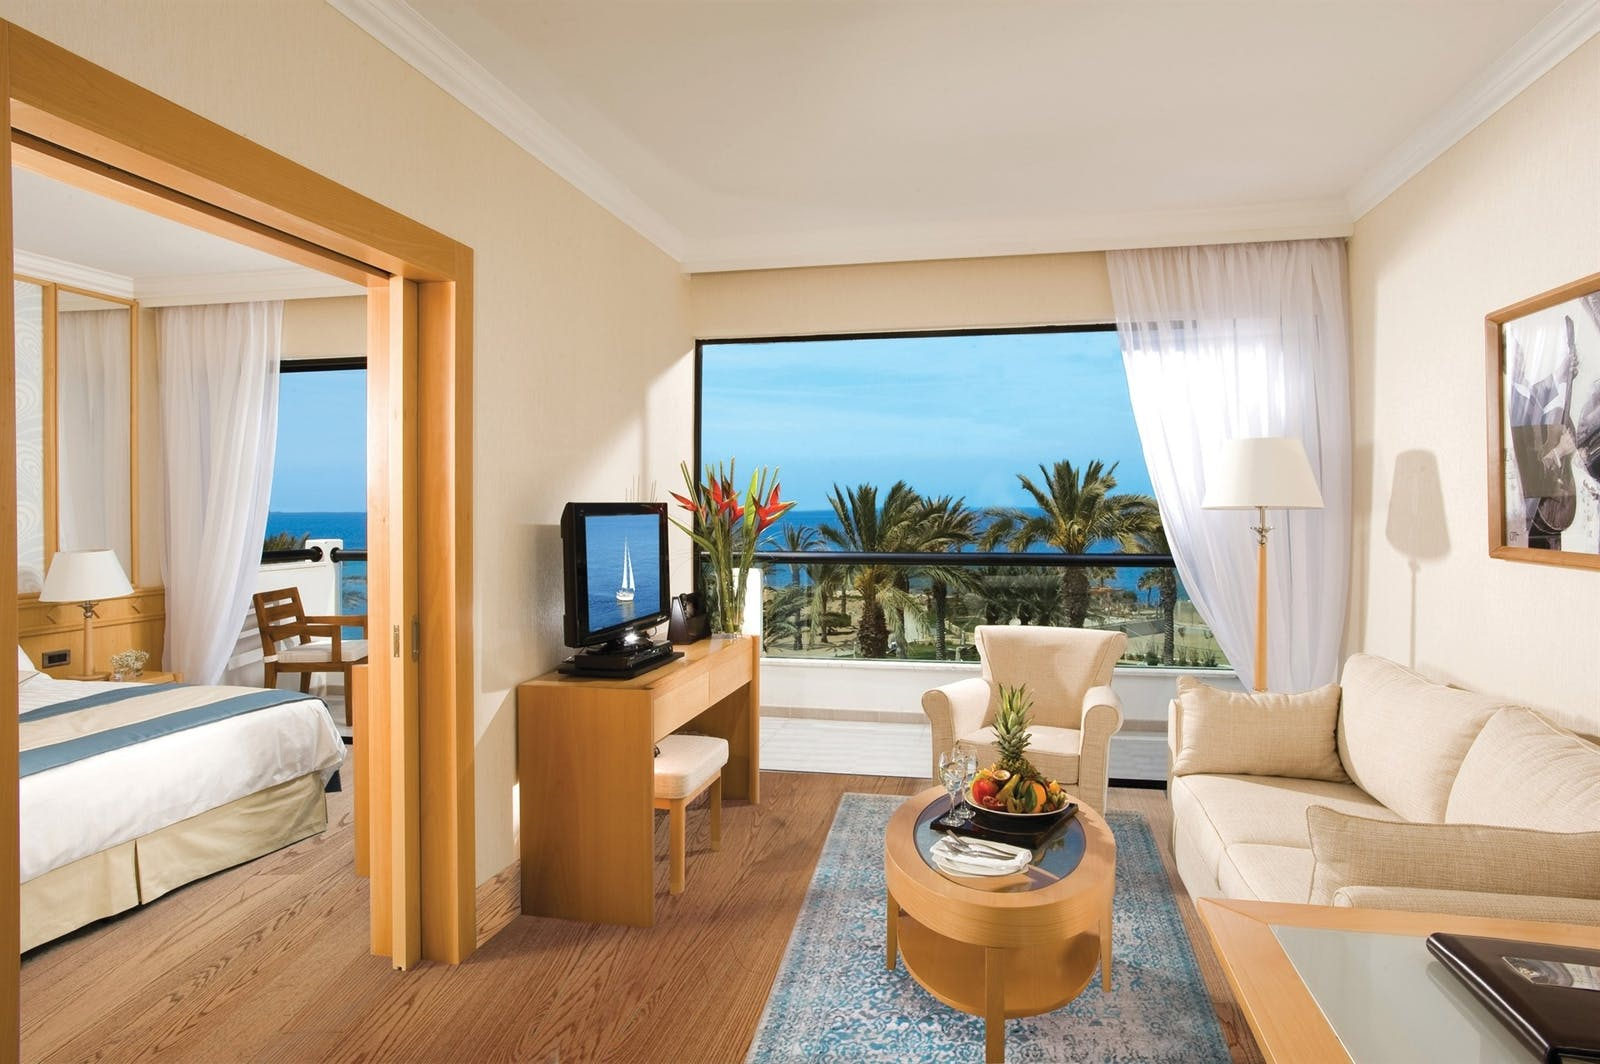 One Bedroom Suite, Constantinou Bros Asimina Suites Hotel, Almyra, Cyprus